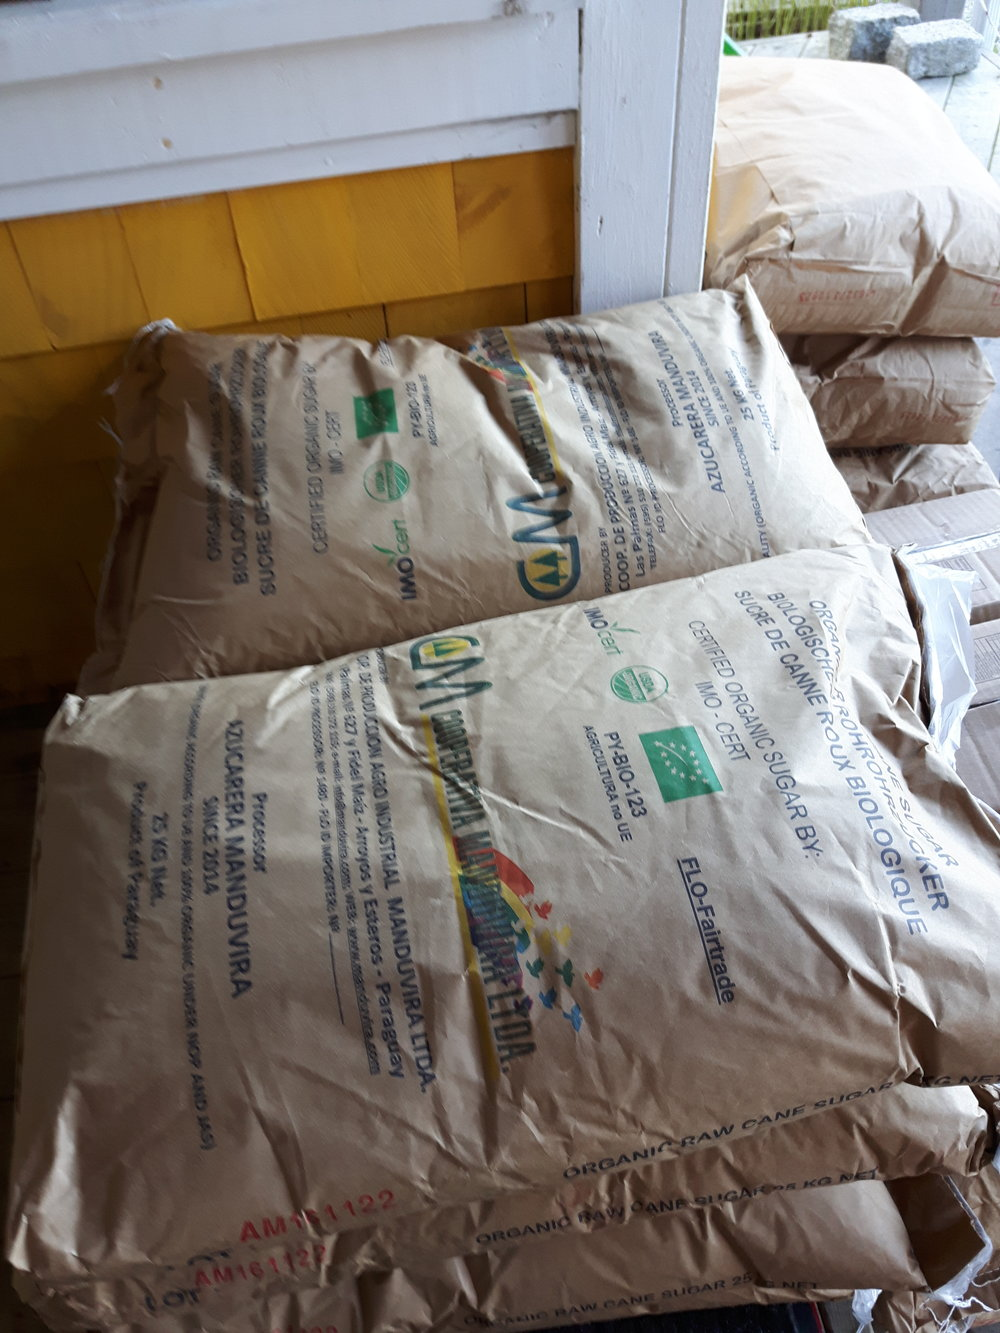 3000kg of Sugar arrived and we moved it into our storage space above PAVIA in Herring Cove.